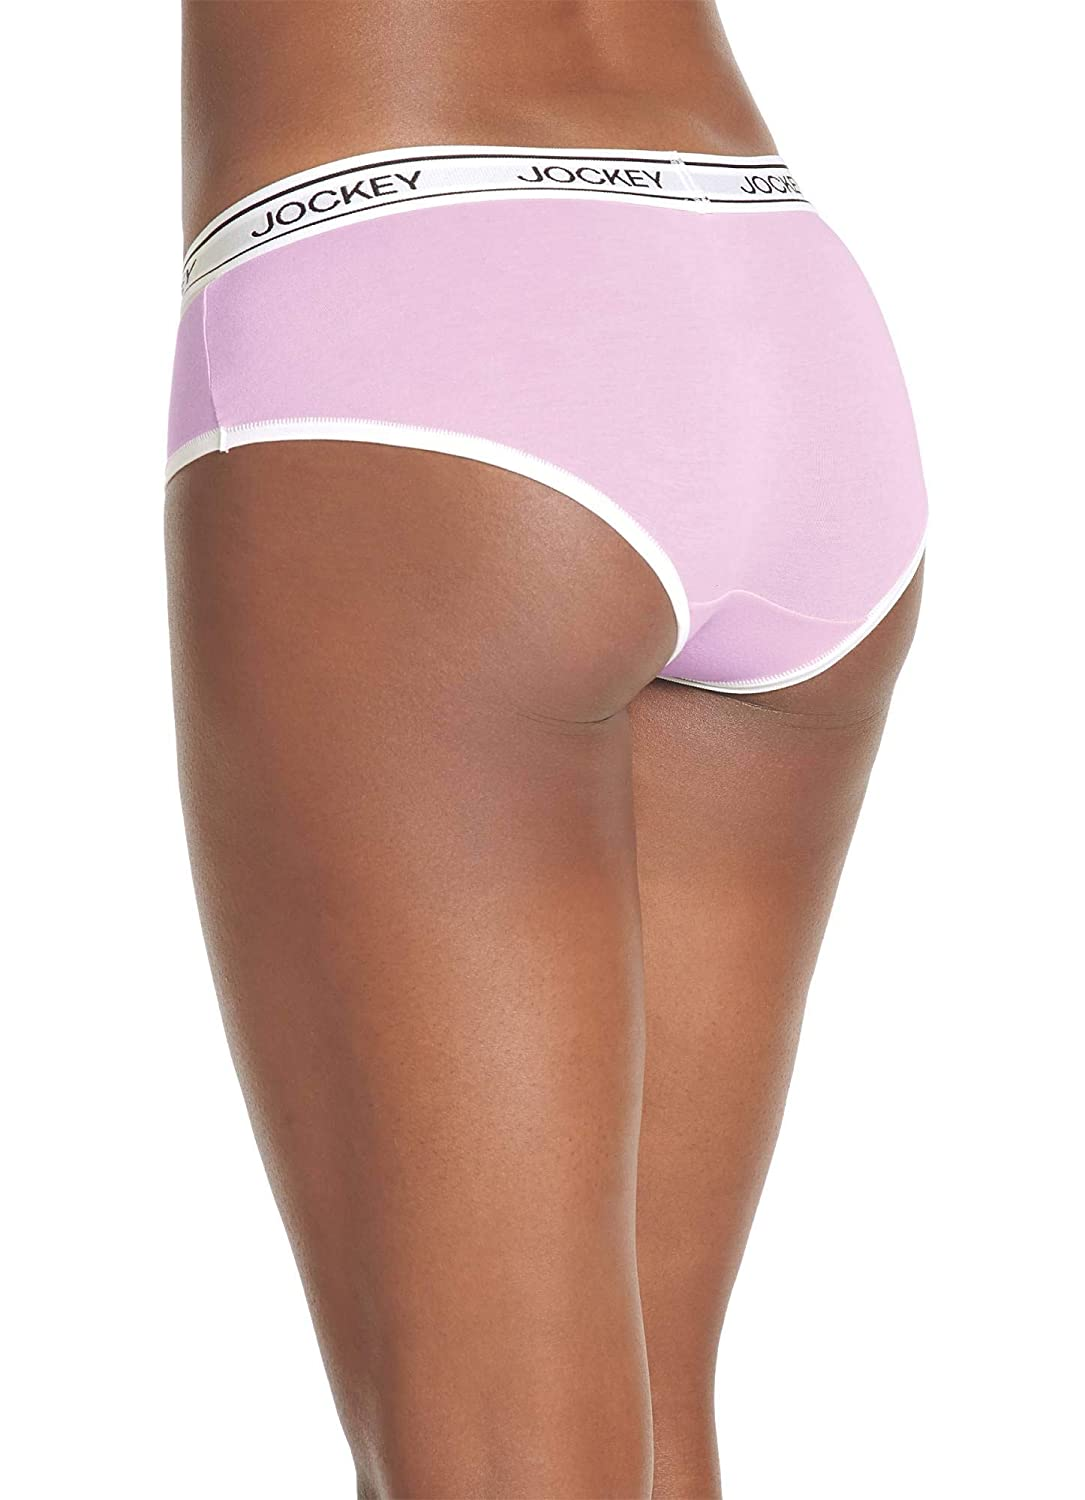 df508d3576f9 Jockey Women's Underwear Signature Modern Mix Y-Front Hipster at Amazon  Women's Clothing store: